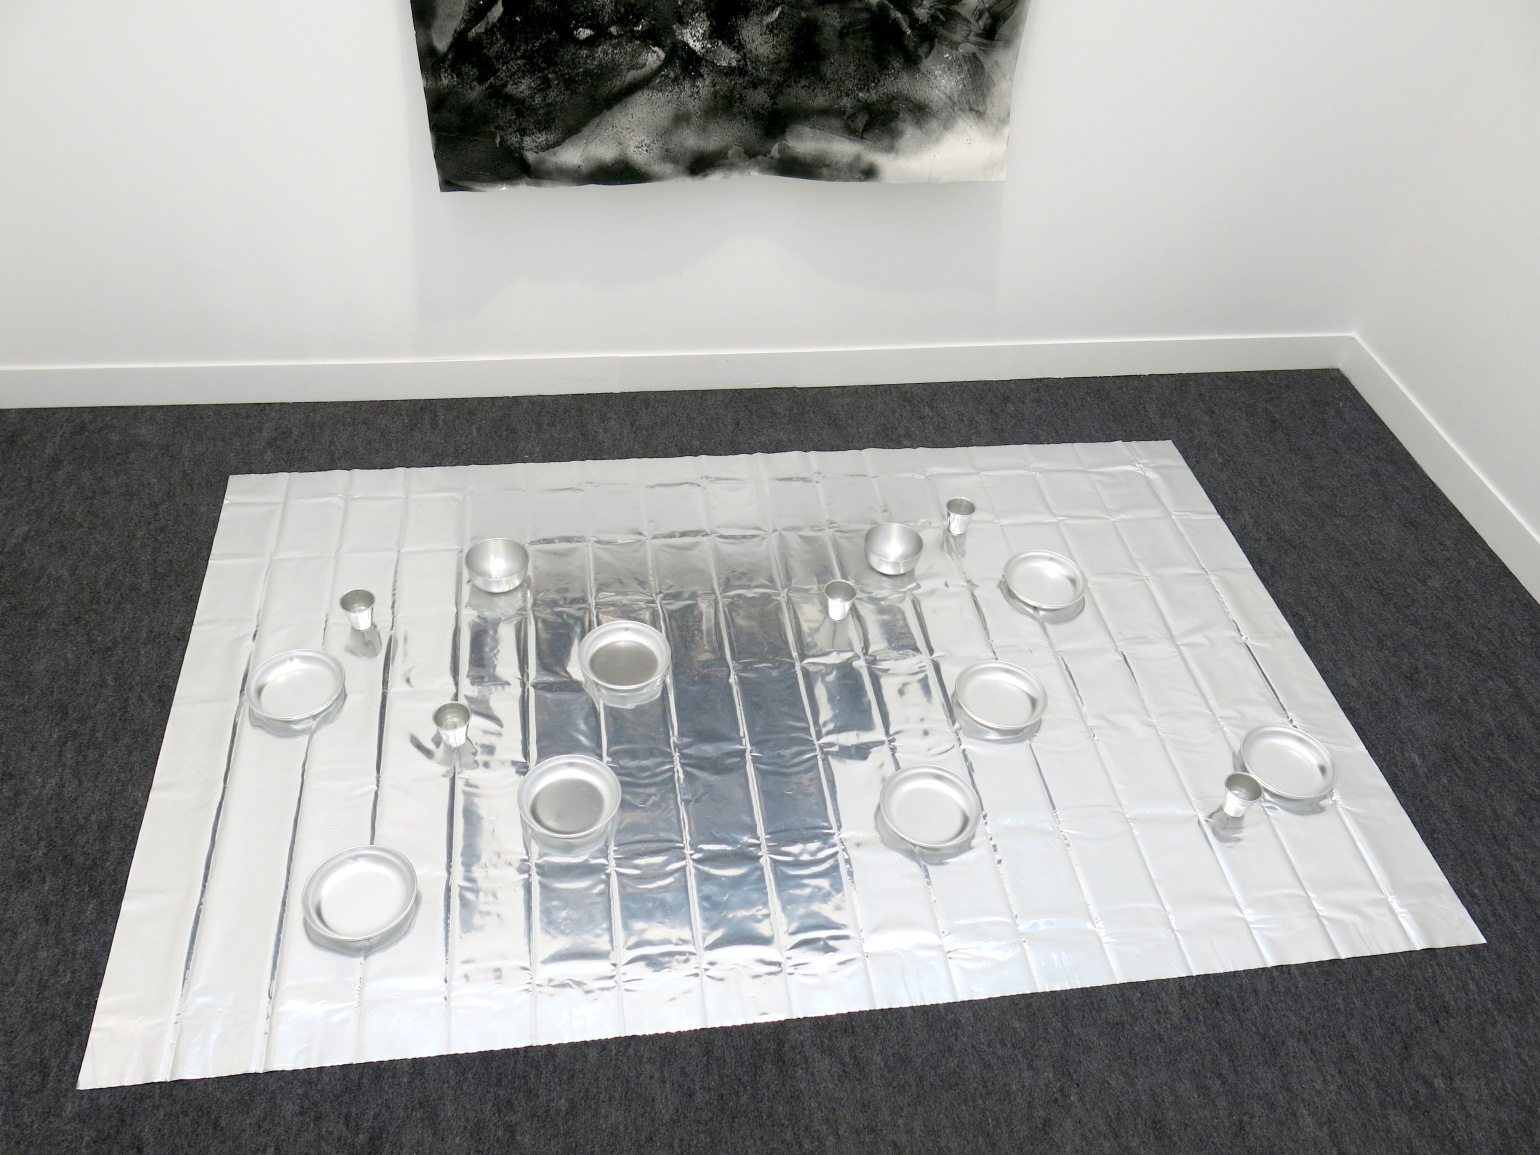 6 Dominique Gonzales-Foerster, 303 Gallery